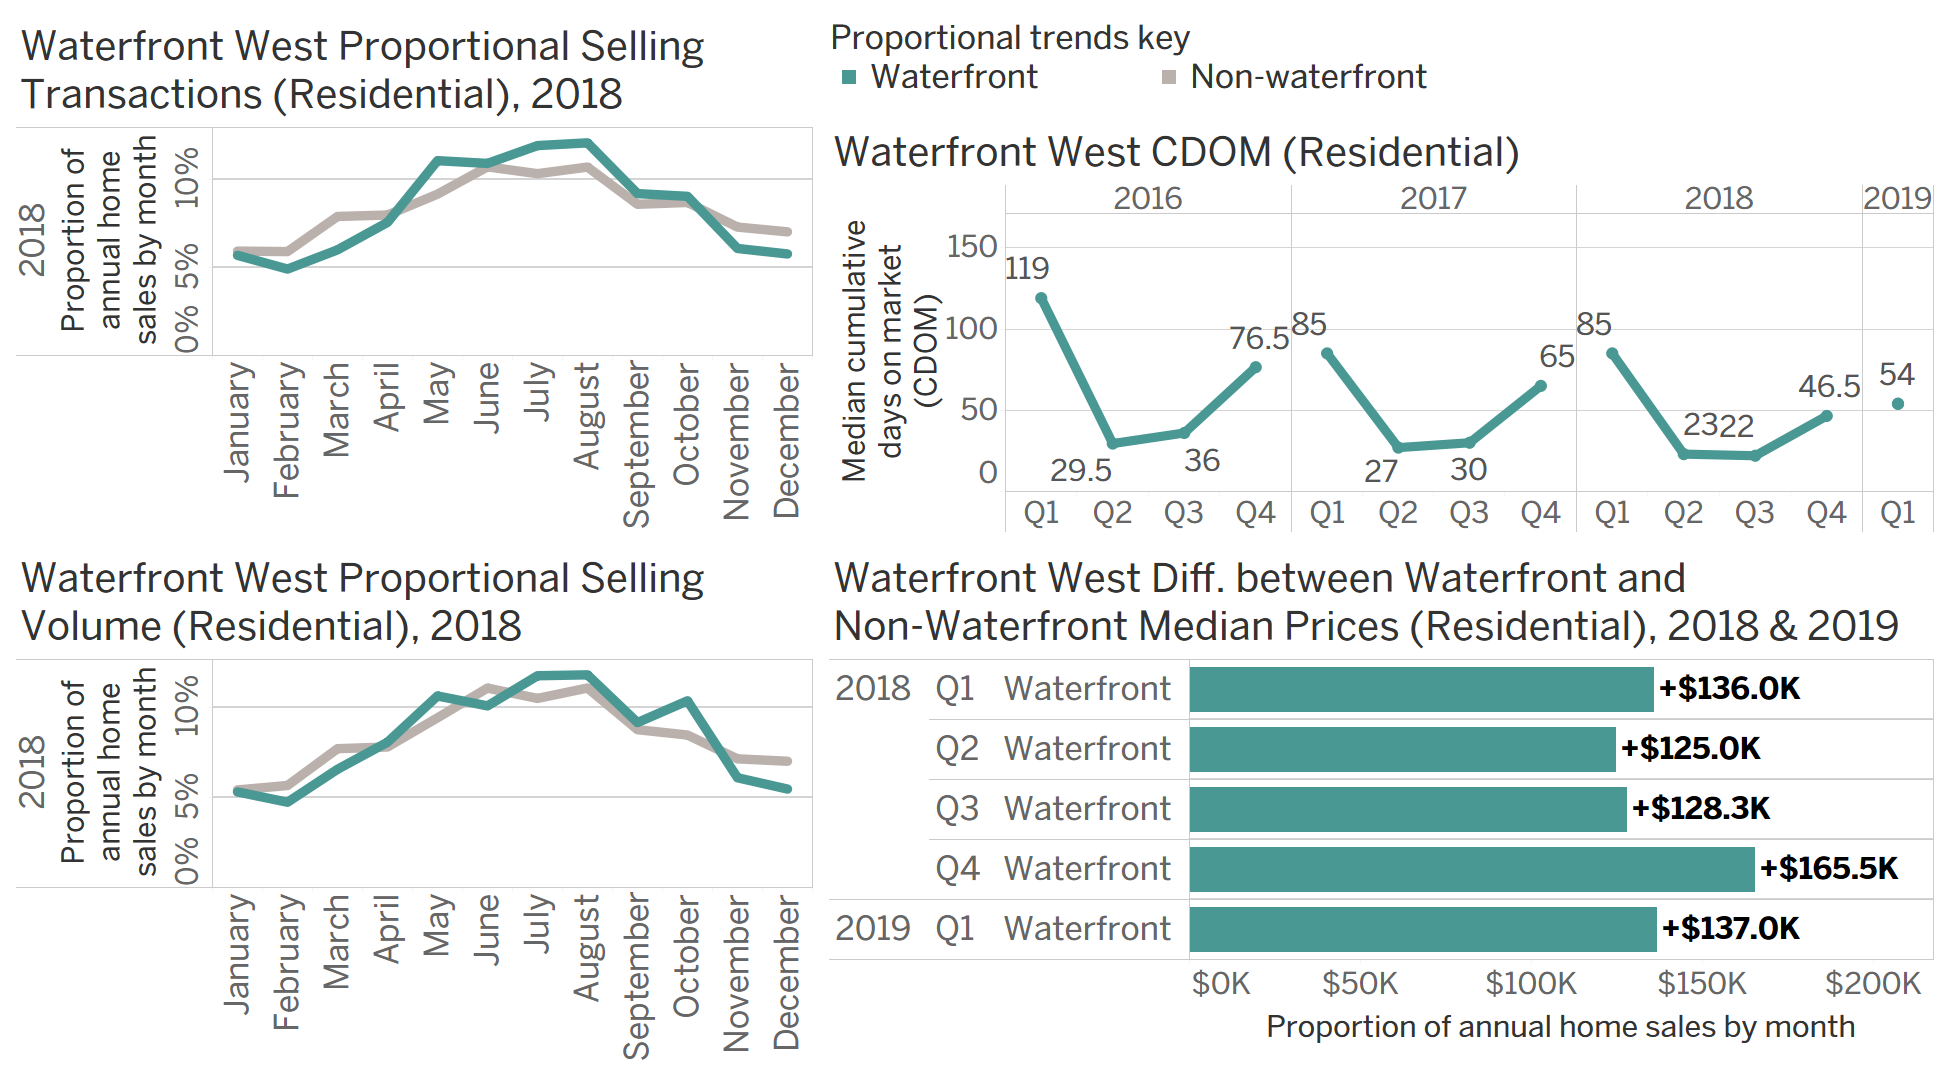 Chart Group C: seasonal waterfront transaction data for Waterfront West.